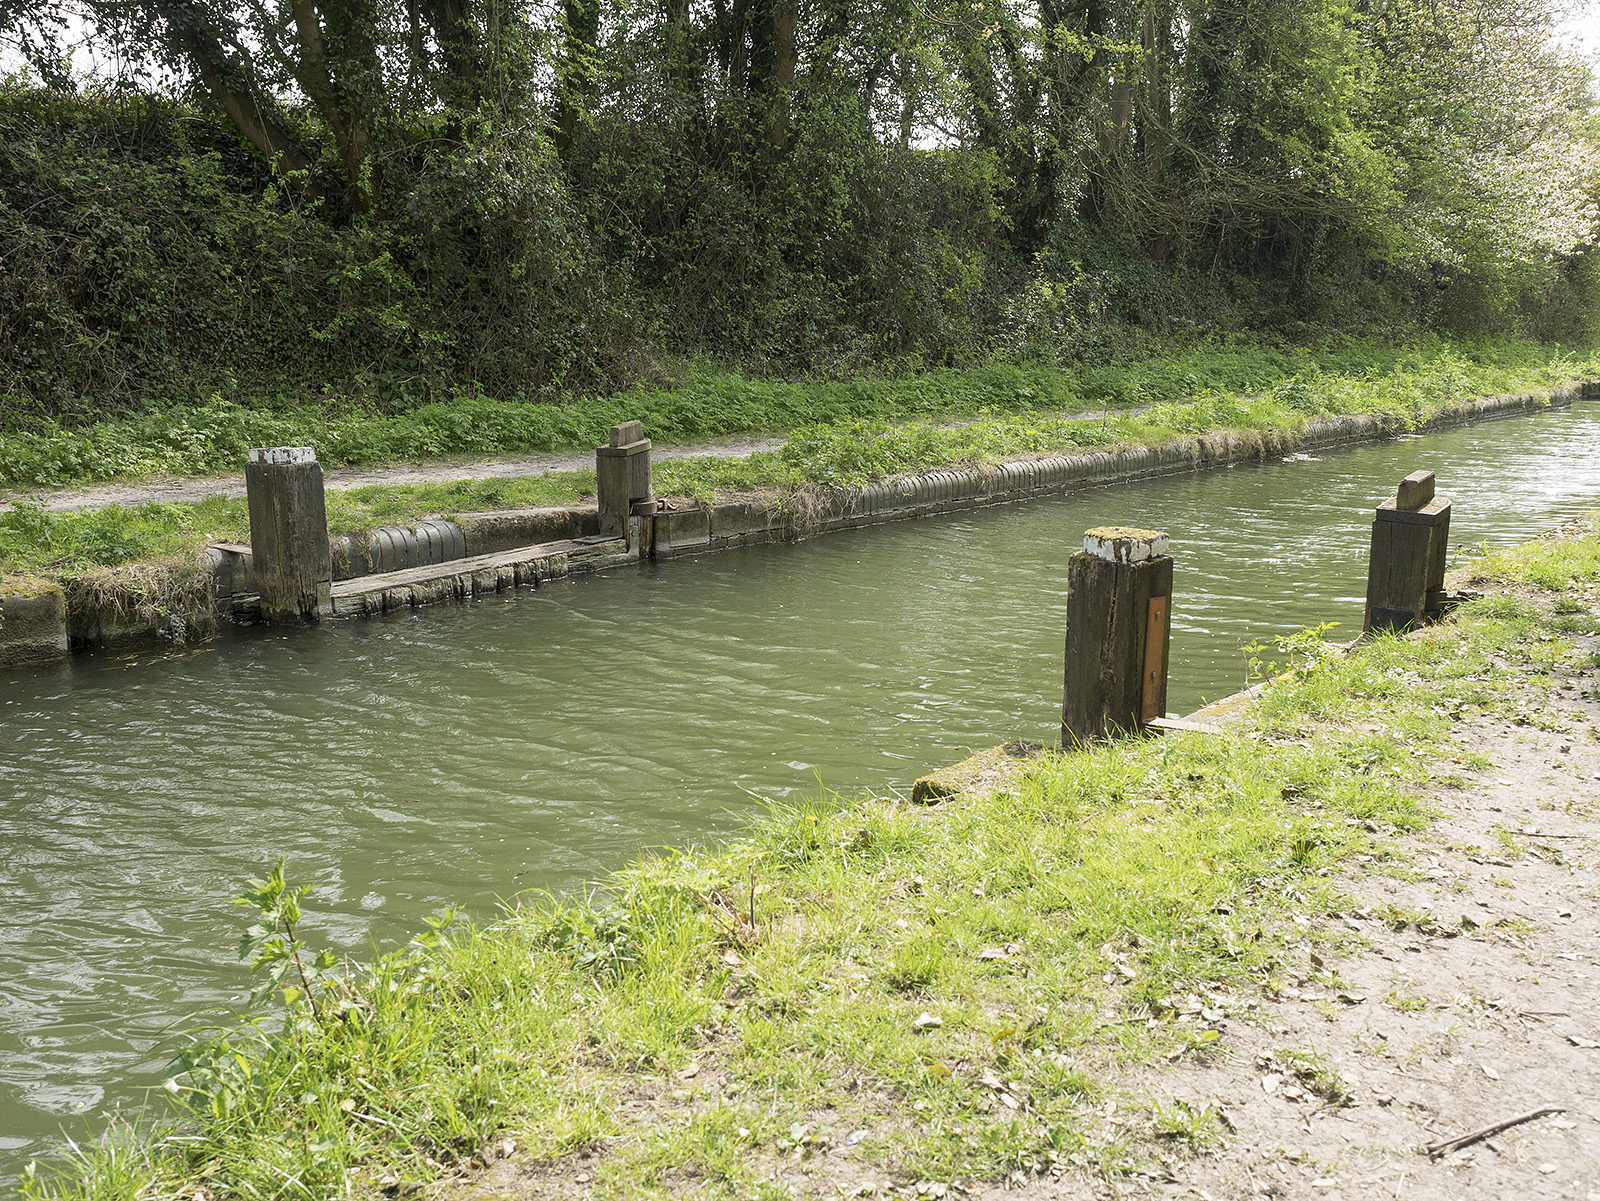 Remains of the stop lock